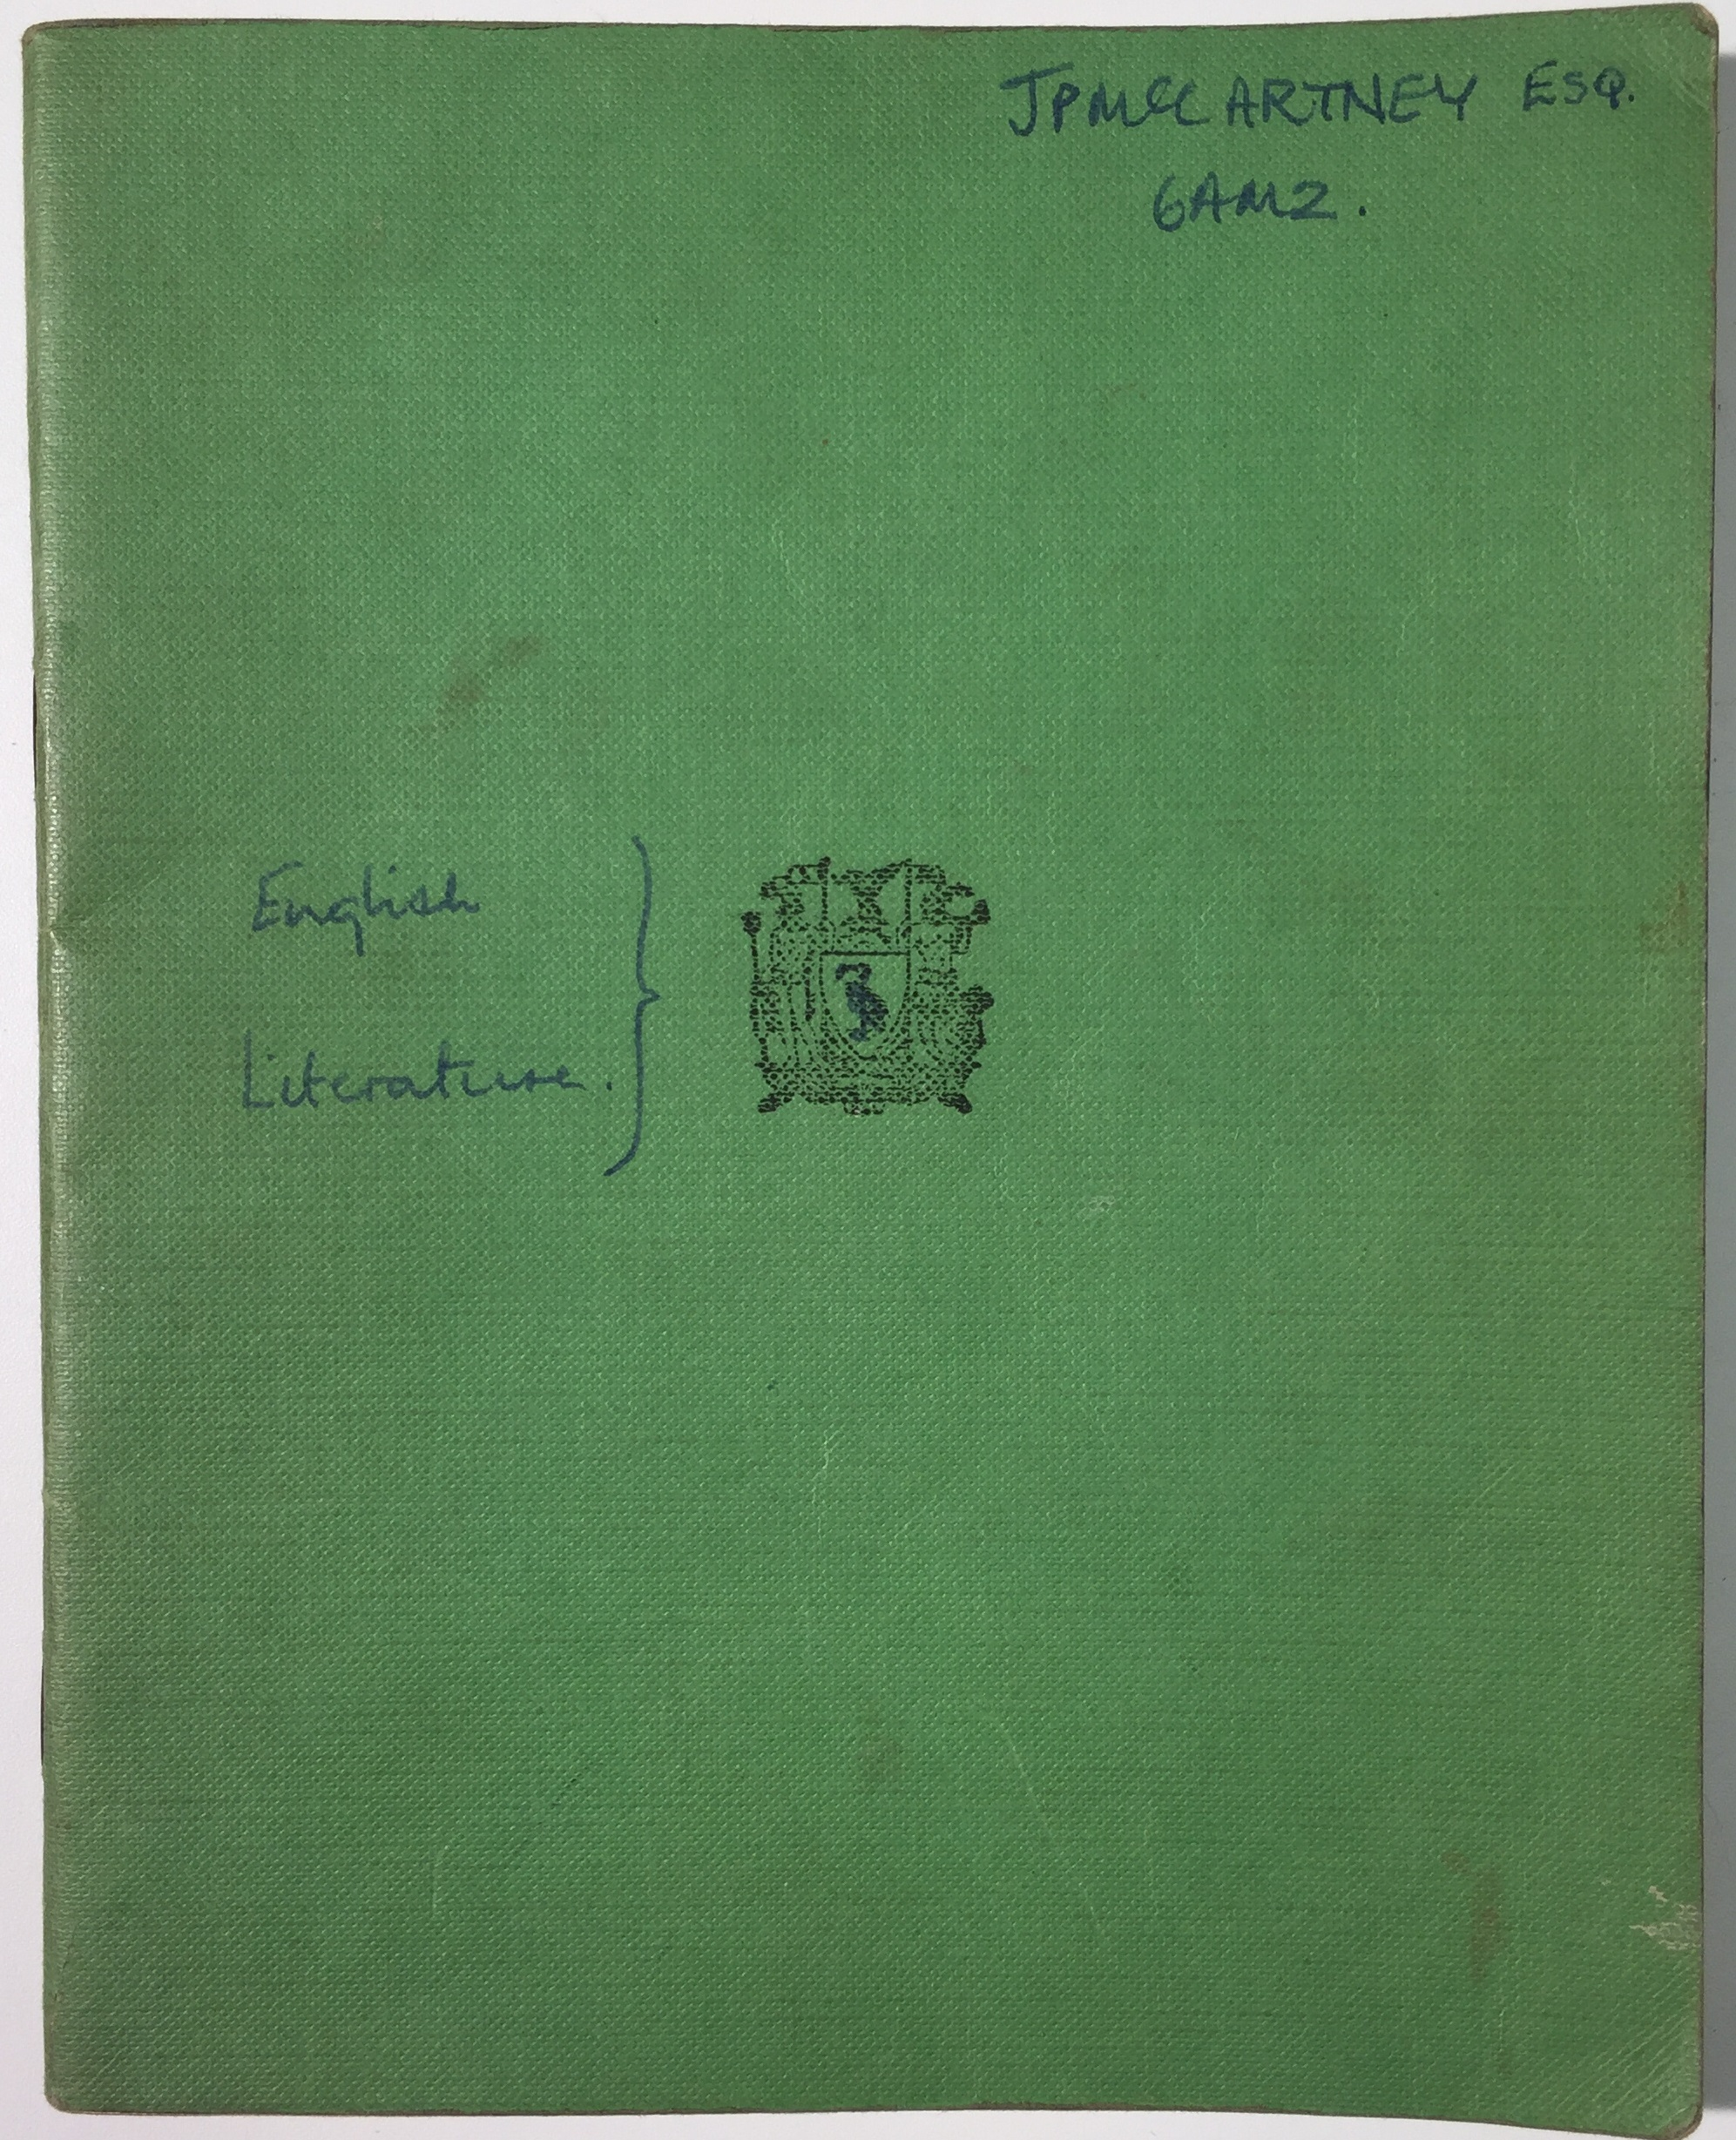 The front of the exercise book